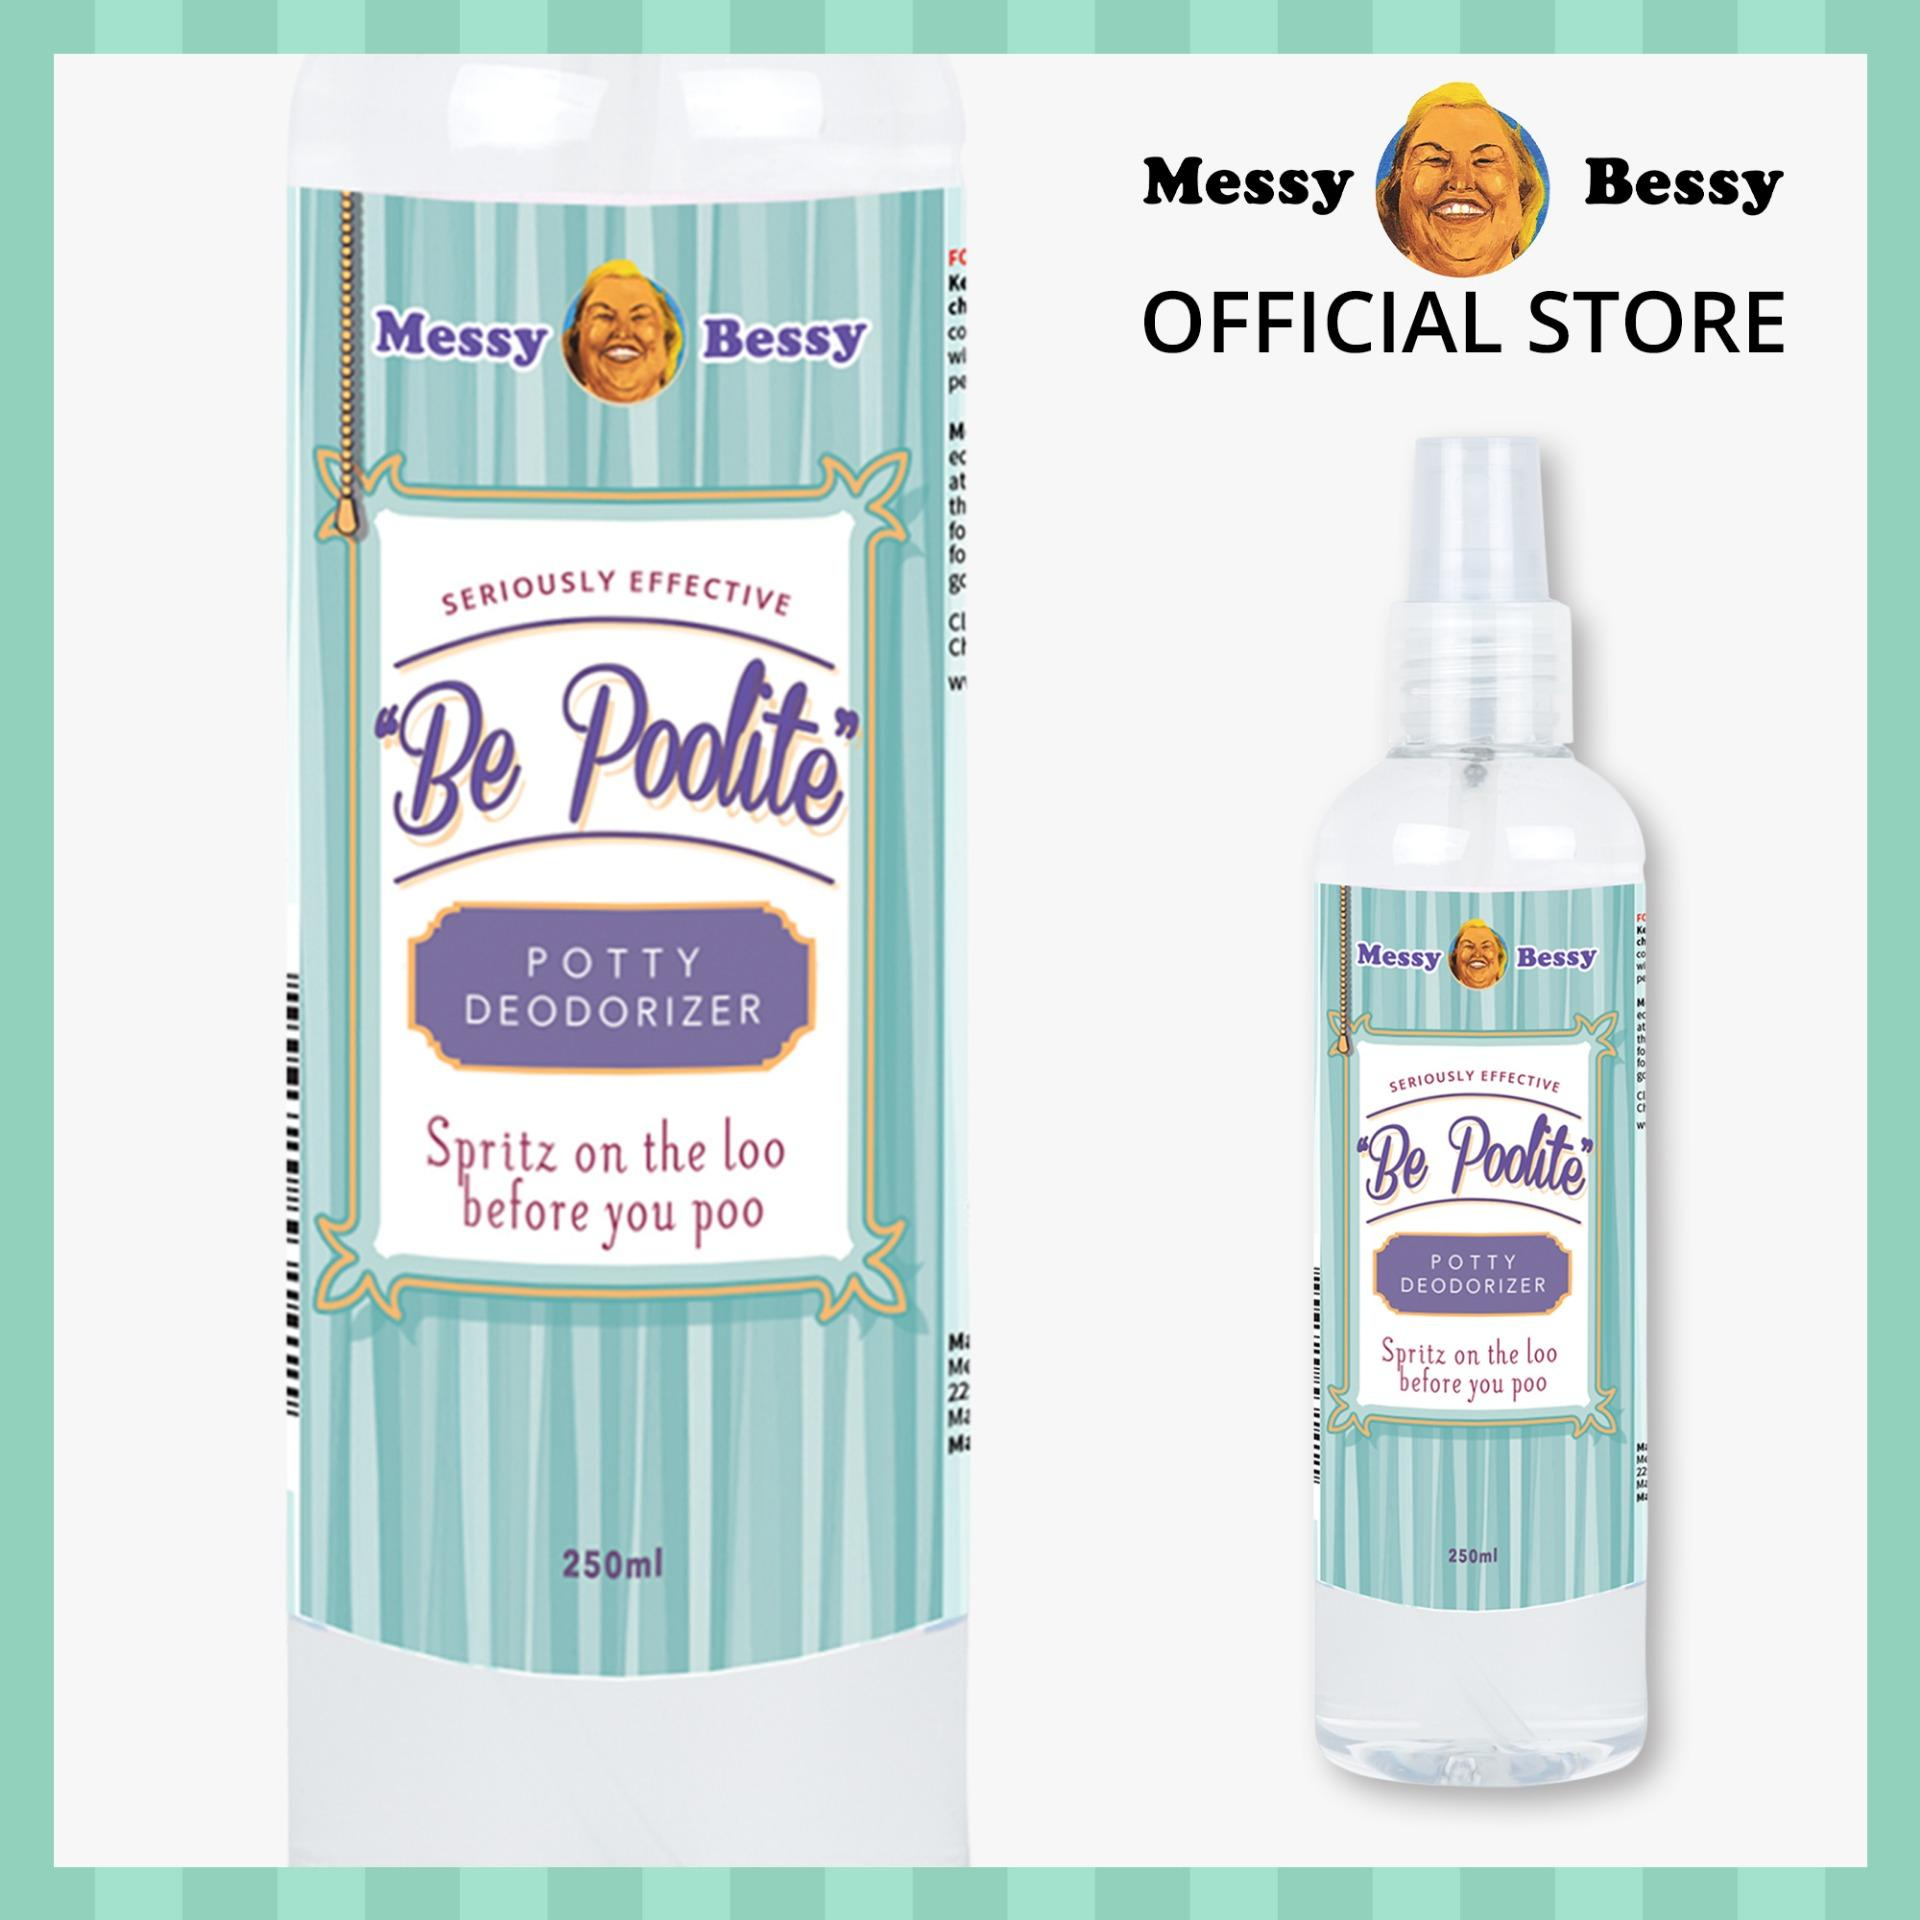 Messy Bessy Be Poolite Deodorizer 250ml By Messy Bessy Official.